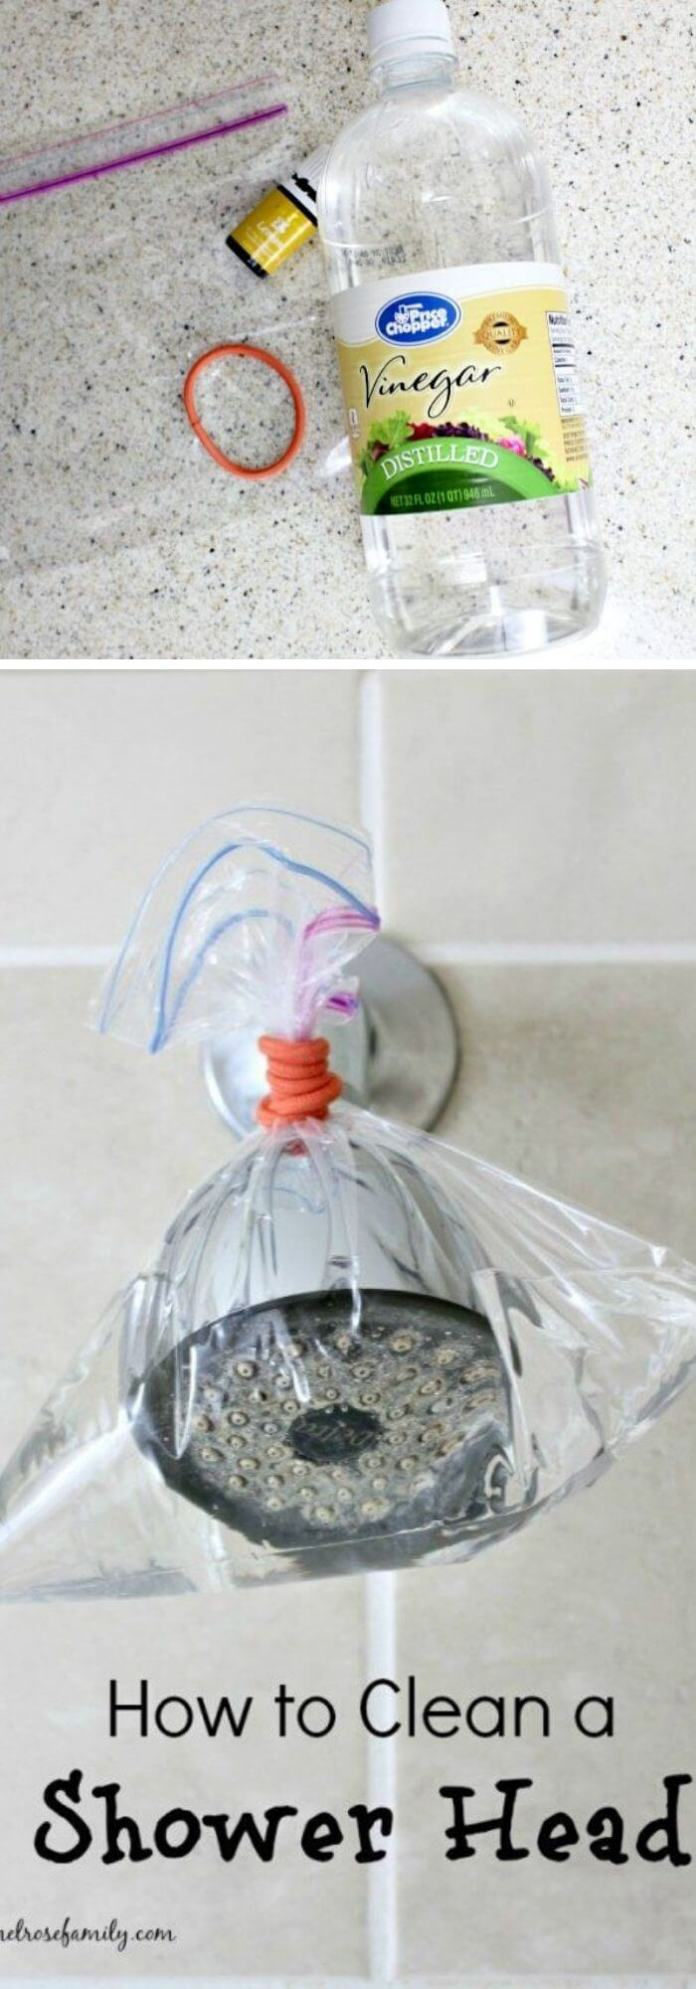 Use sandwich bag and distilled white vinegar to clean shower head